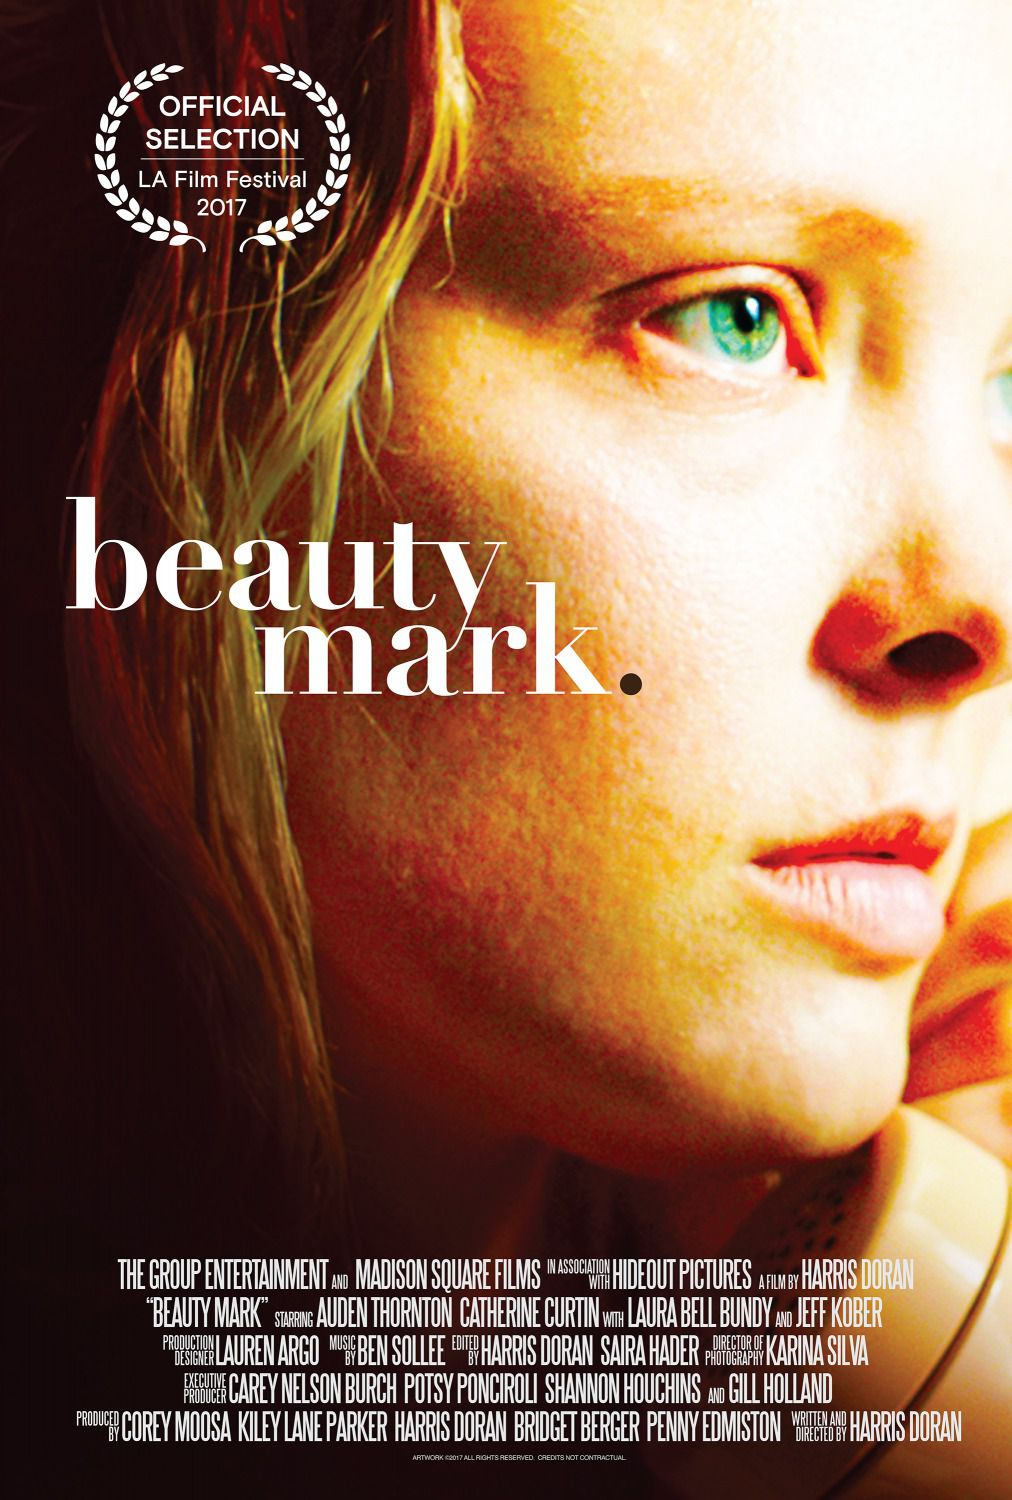 Beauty Mark - poster - Auden Thornton - Caterine Curtin - Laura Bell Bundy - Jeff Kober